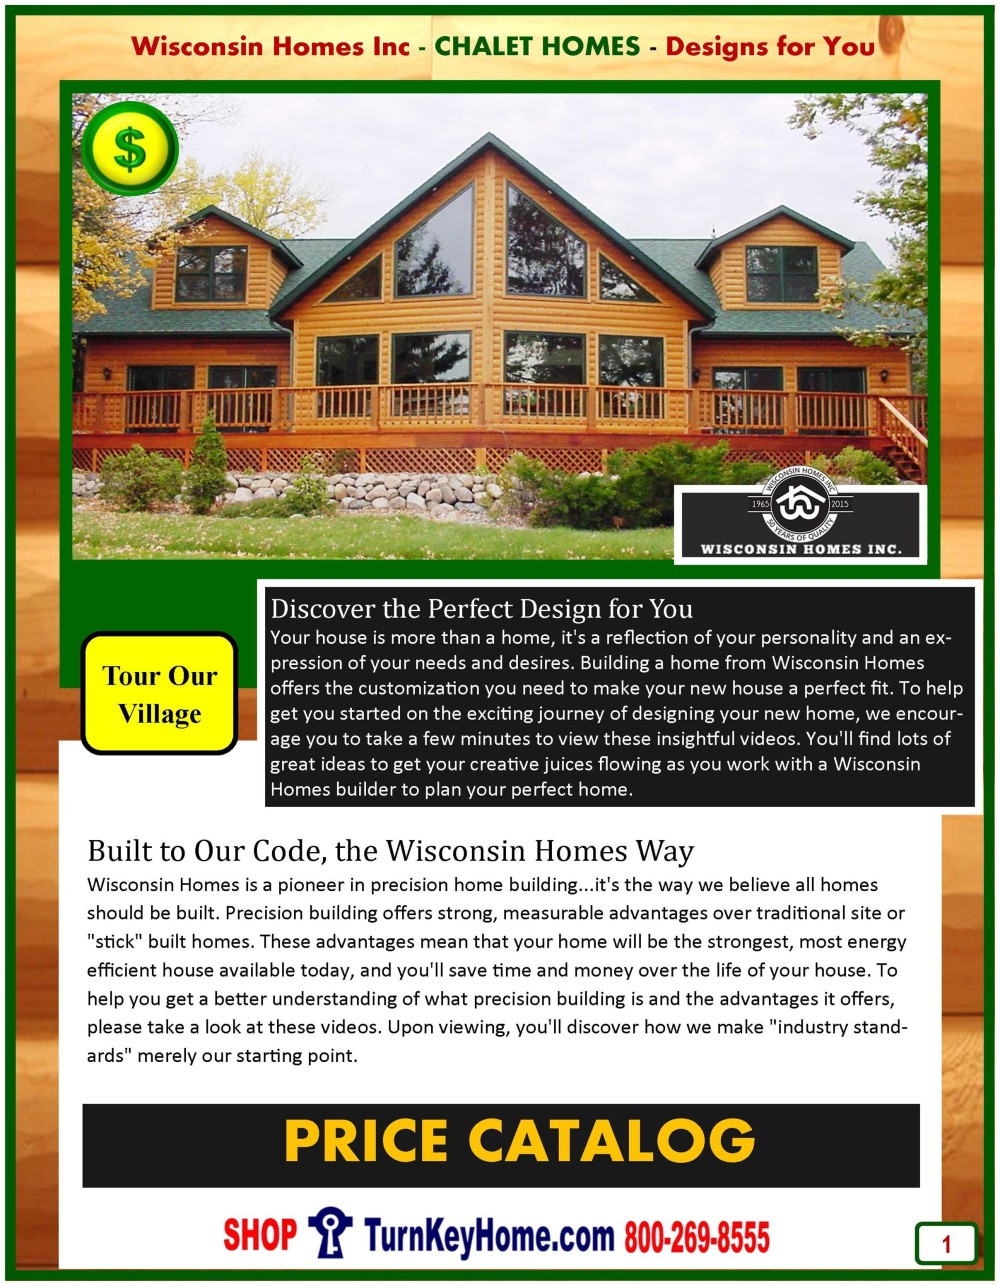 Chalet Modular Home Prices From Wisconsin Homes Inc Chalet